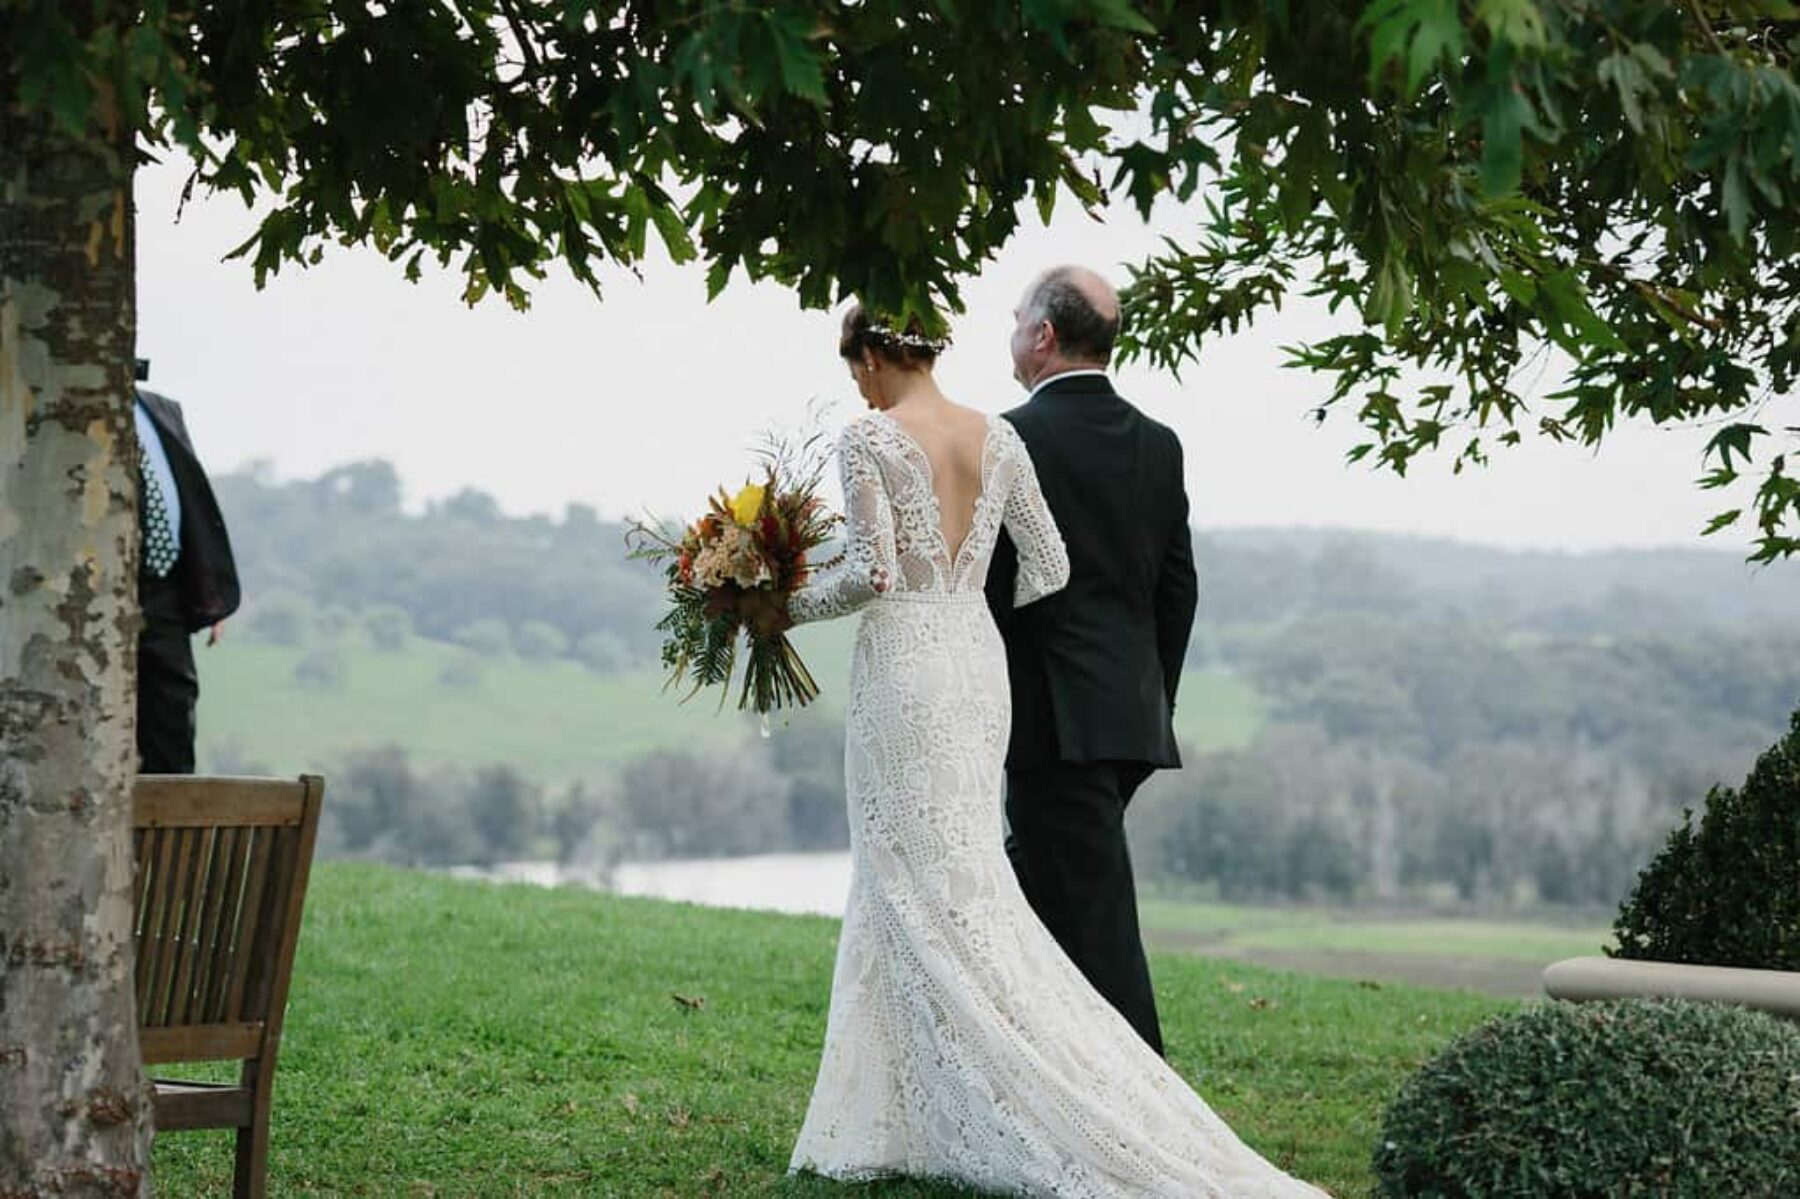 cupitts-winery-wedding-ulladulla-nsw-photograher-jimmy-raper-25